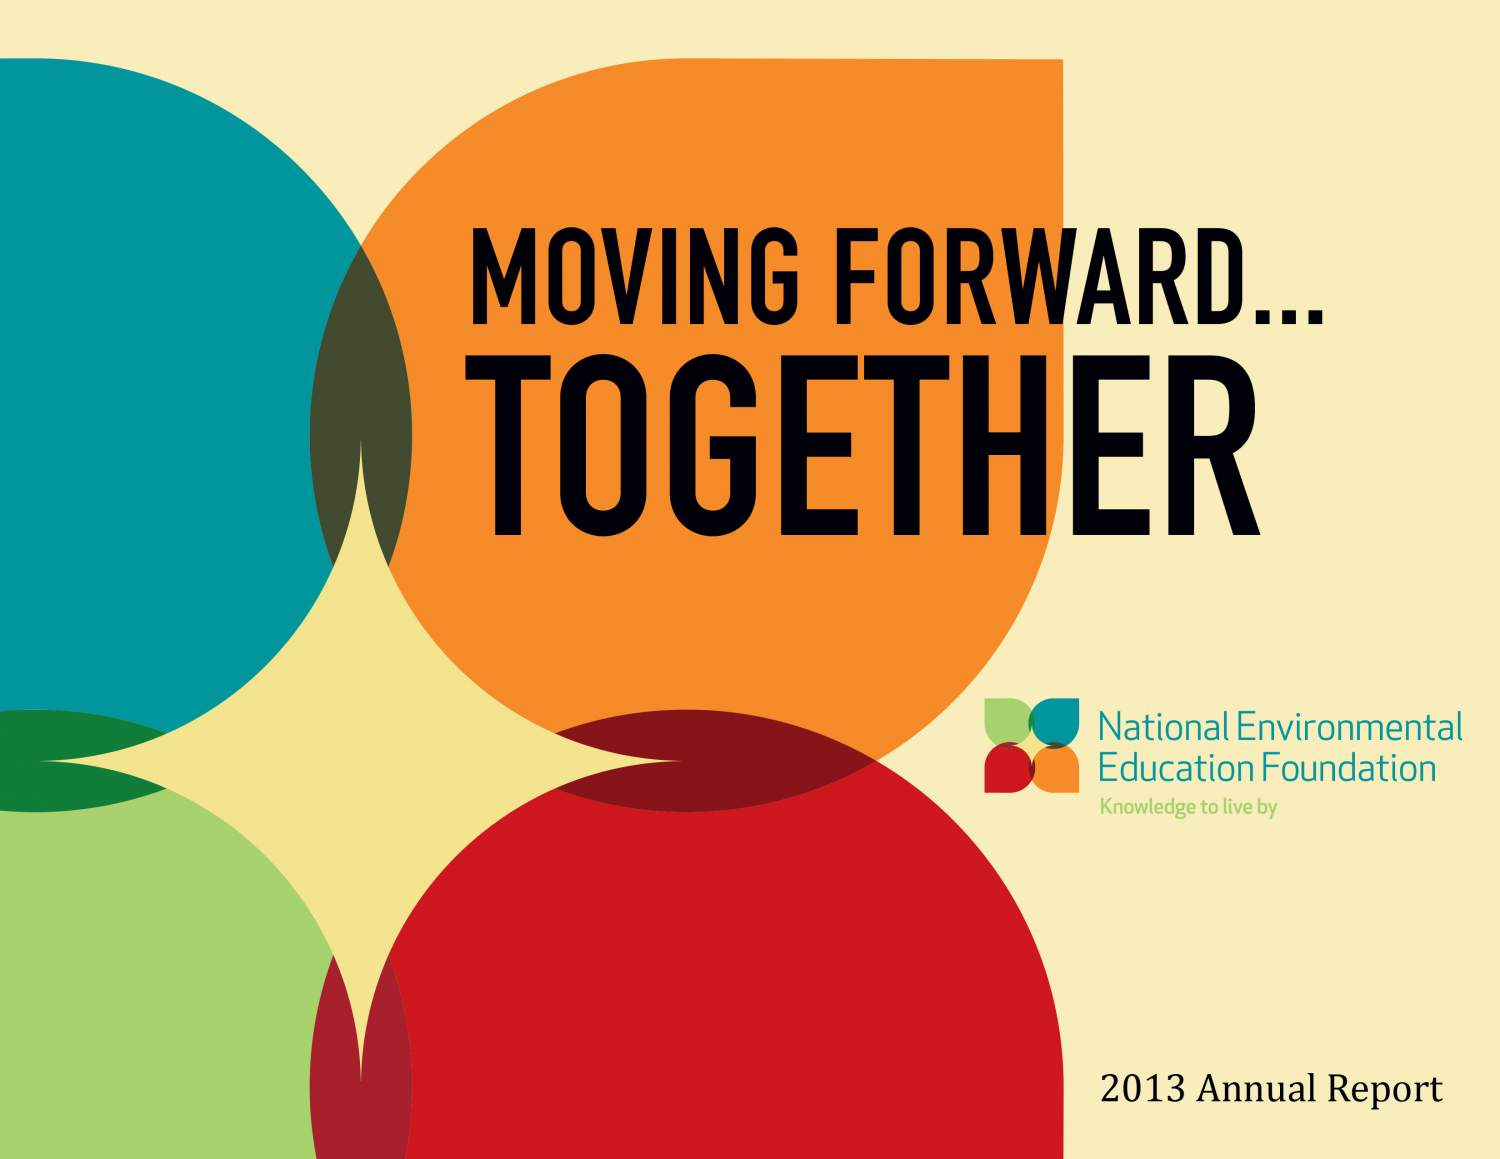 Moving Forward...Together - The NEEF Annual Report 2013